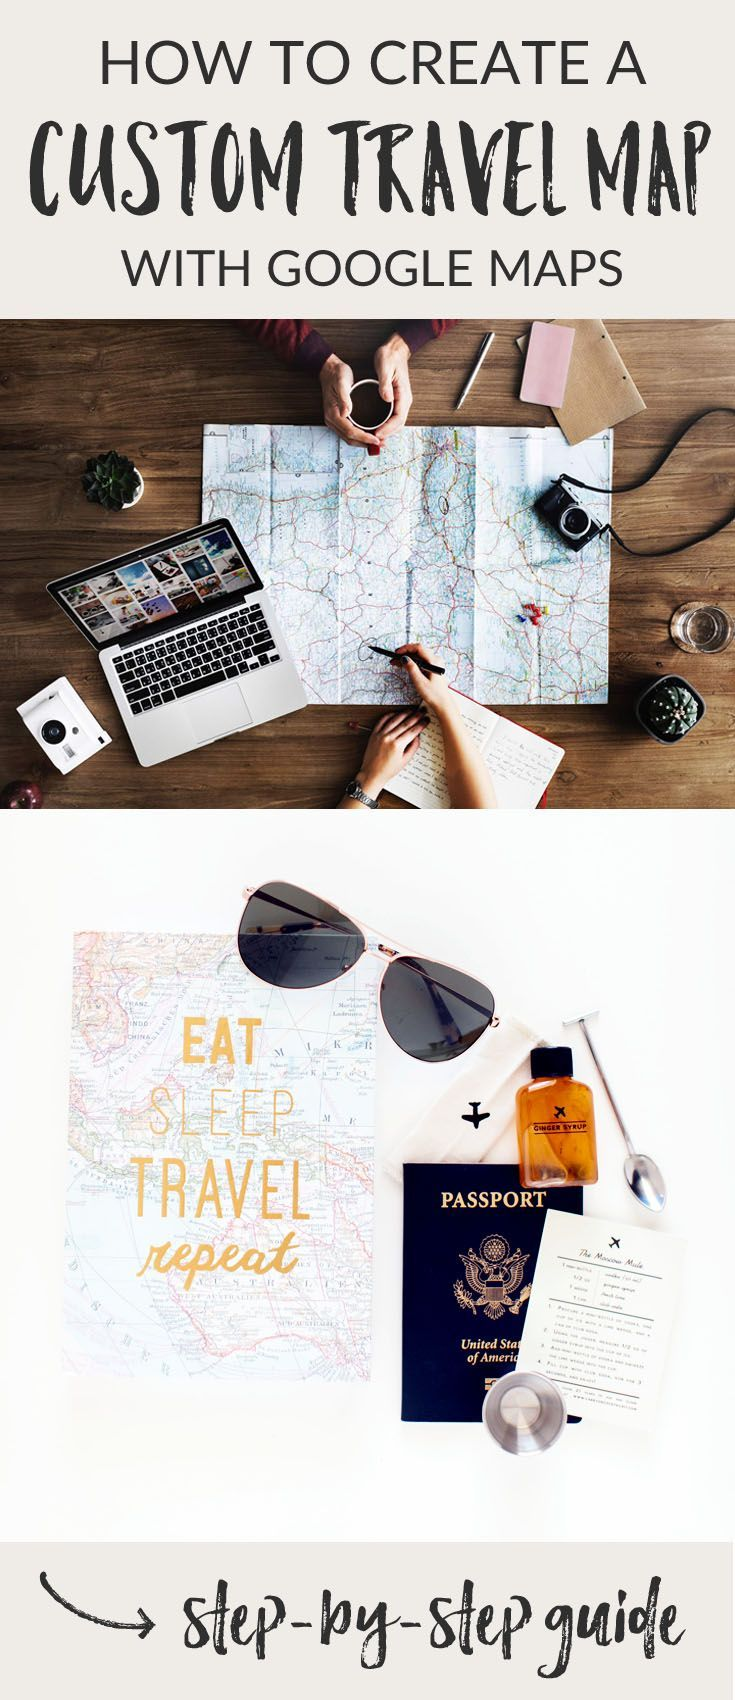 The ultimate guide to planning a trip with Google My Maps | how to create a custom map | road trip planning | travel tips and organization | how to use Google My Maps to plan a trip itinerary | summer travel | United States road trips | Google Maps trip planner #roadtrip #roadtripusa #traveltips via @roamtheamericas